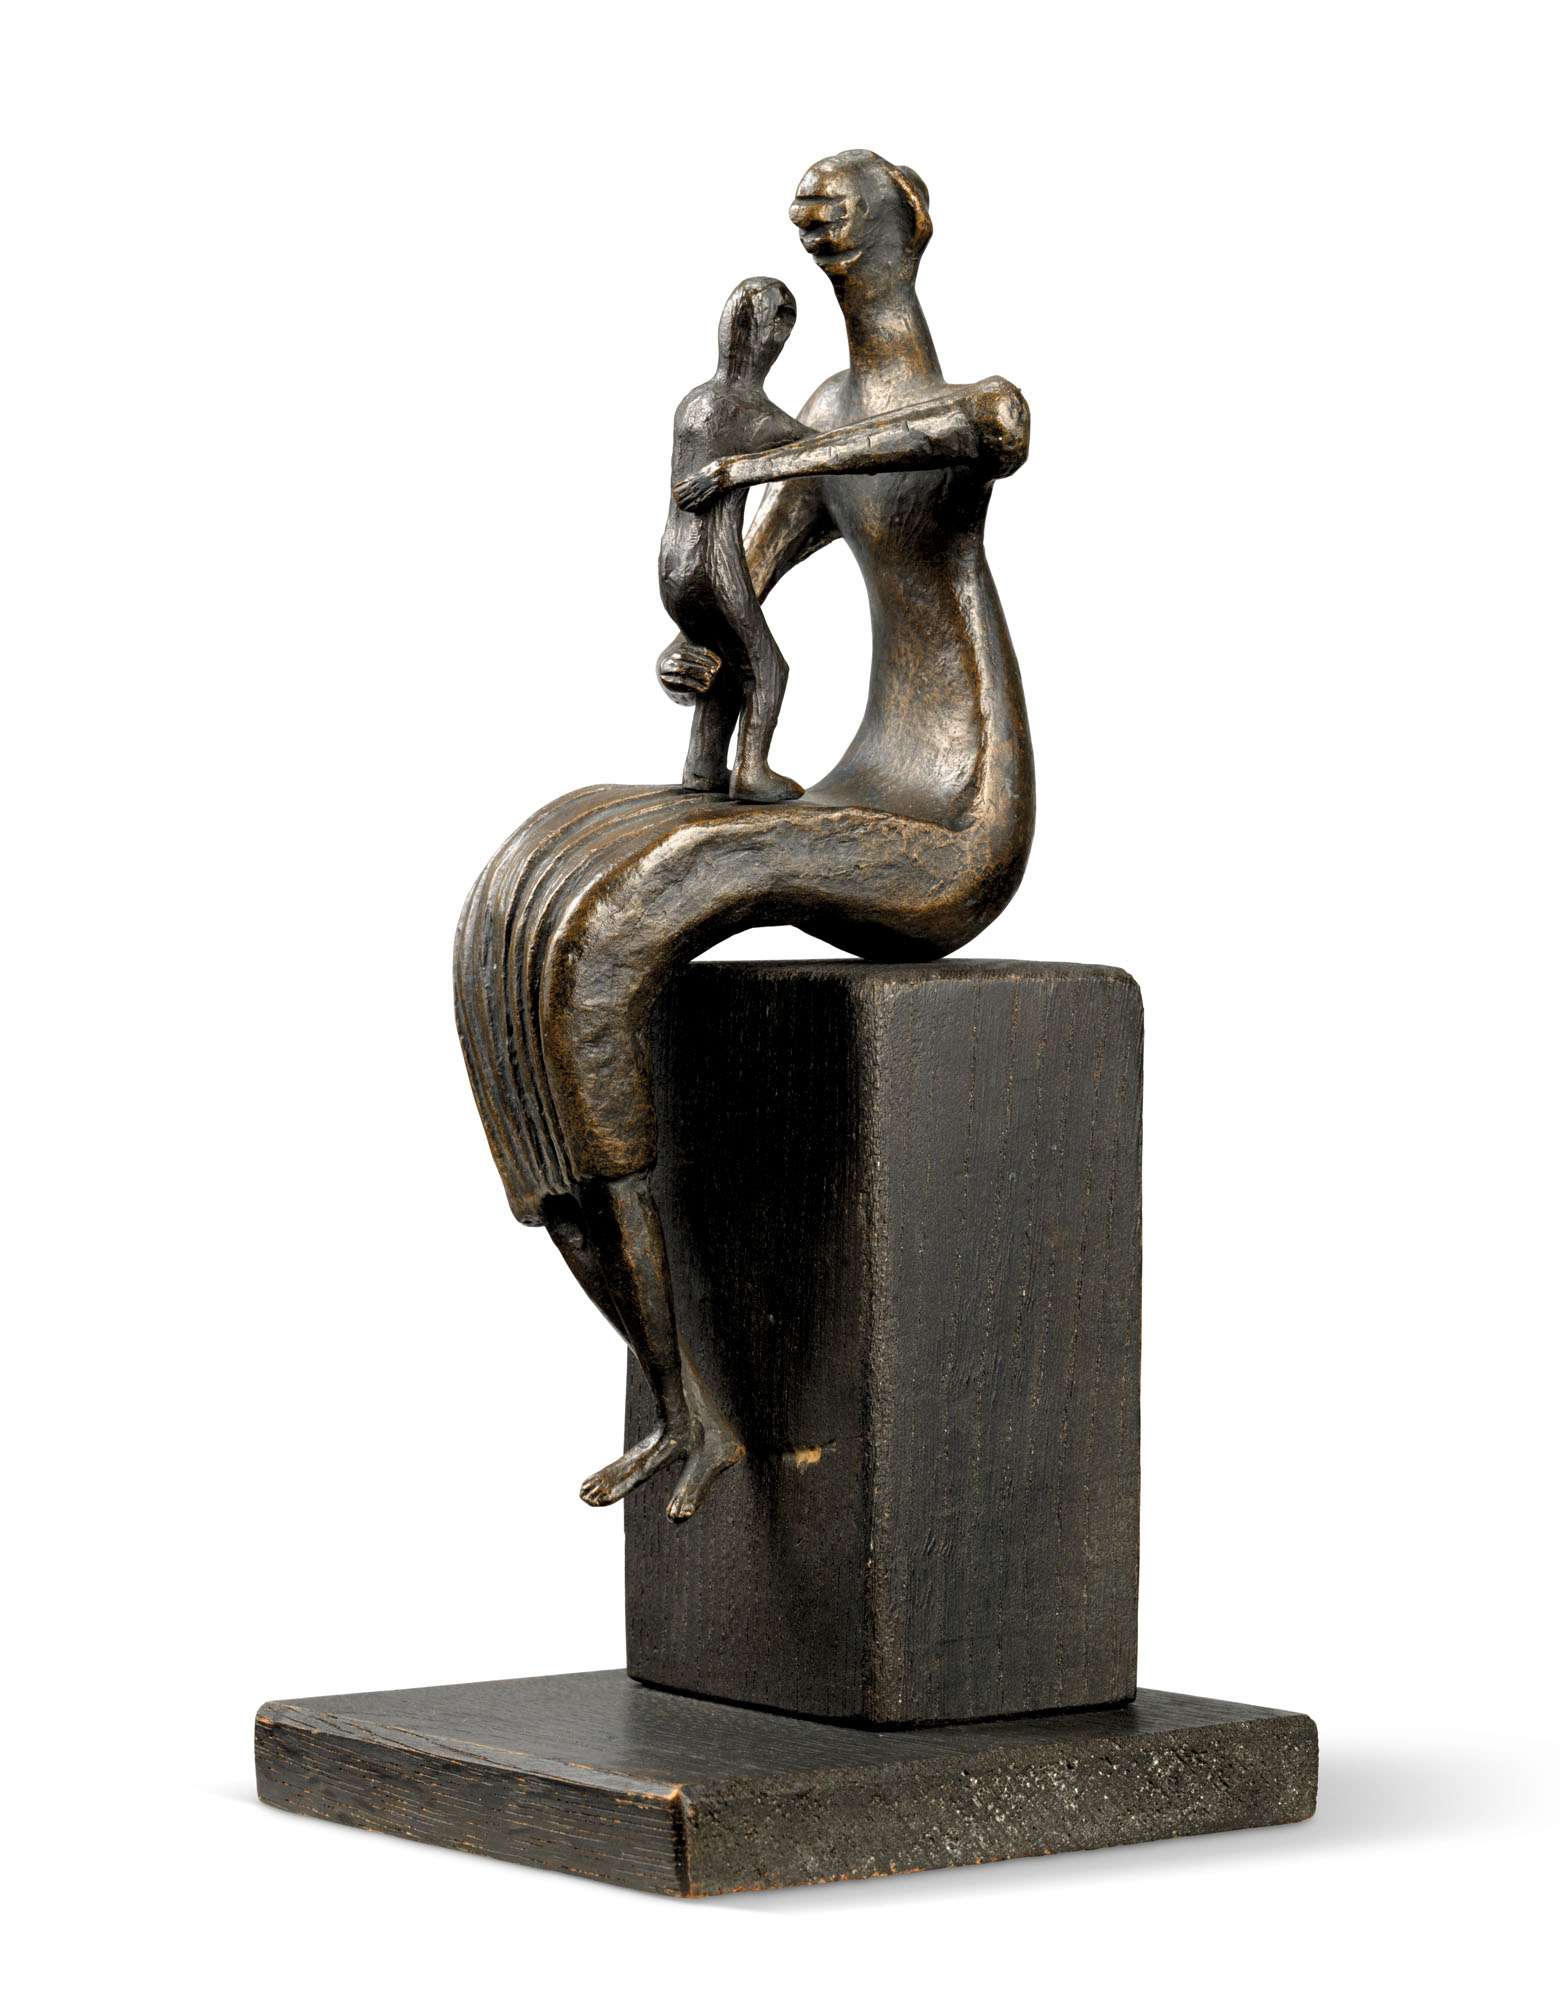 Henry Moore (1898-1986),Mother and Child Crossed Feet, conceived in 1956 and cast in 1957. Bronze with a dark brown patina, on a black painted wooden base 8½ in (21.6 cm) high. Estimate £200,000-300,000. Offered inModern British Art Day Saleon 2 March at Christie's inLondon